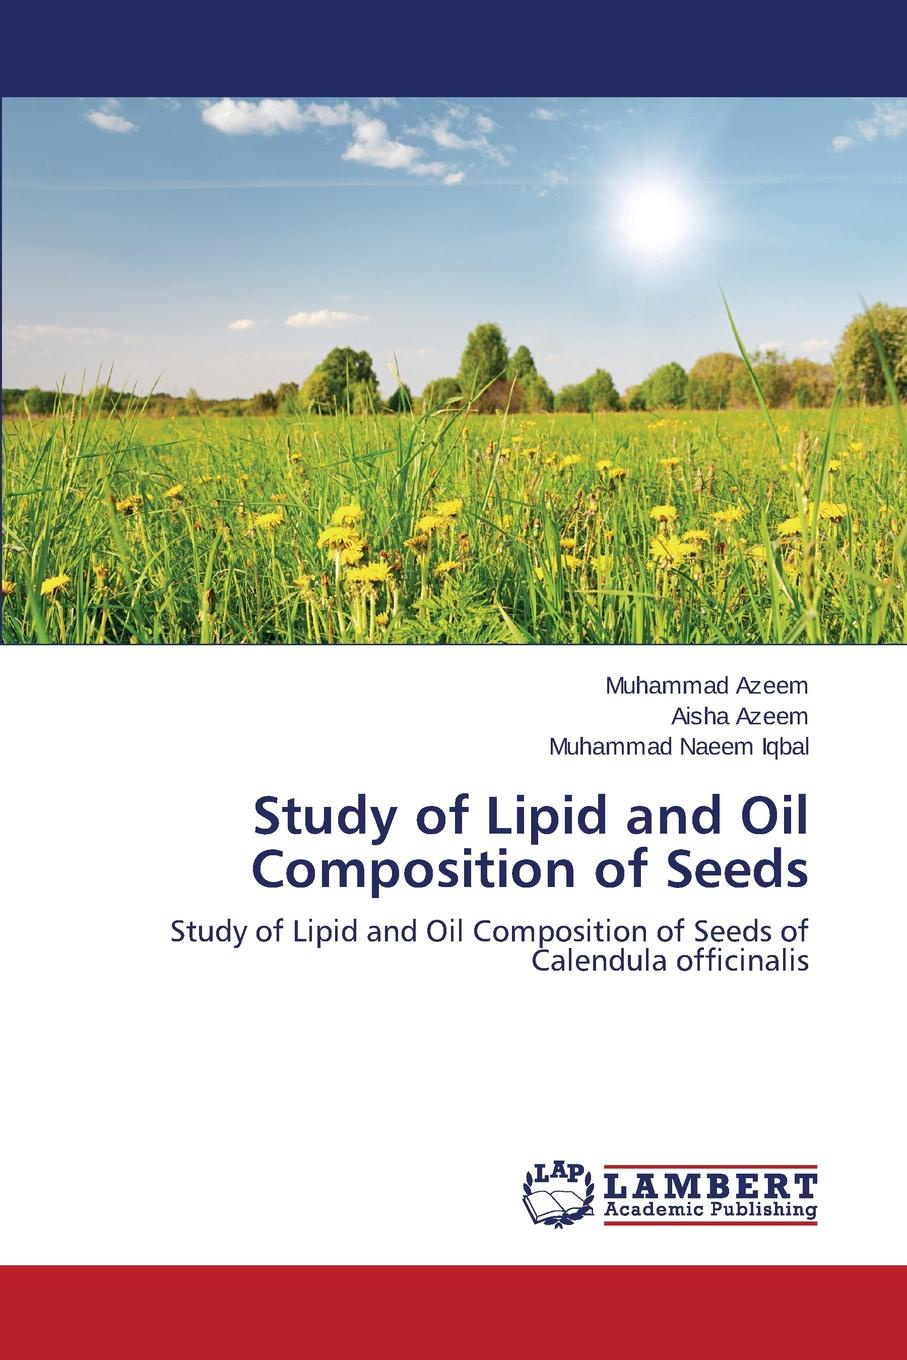 Azeem Muhammad, Azeem Aisha, Iqbal Muhammad Naeem Study of Lipid and Oil Composition of Seeds ameenah gurib fakim novel plant bioresources applications in food medicine and cosmetics